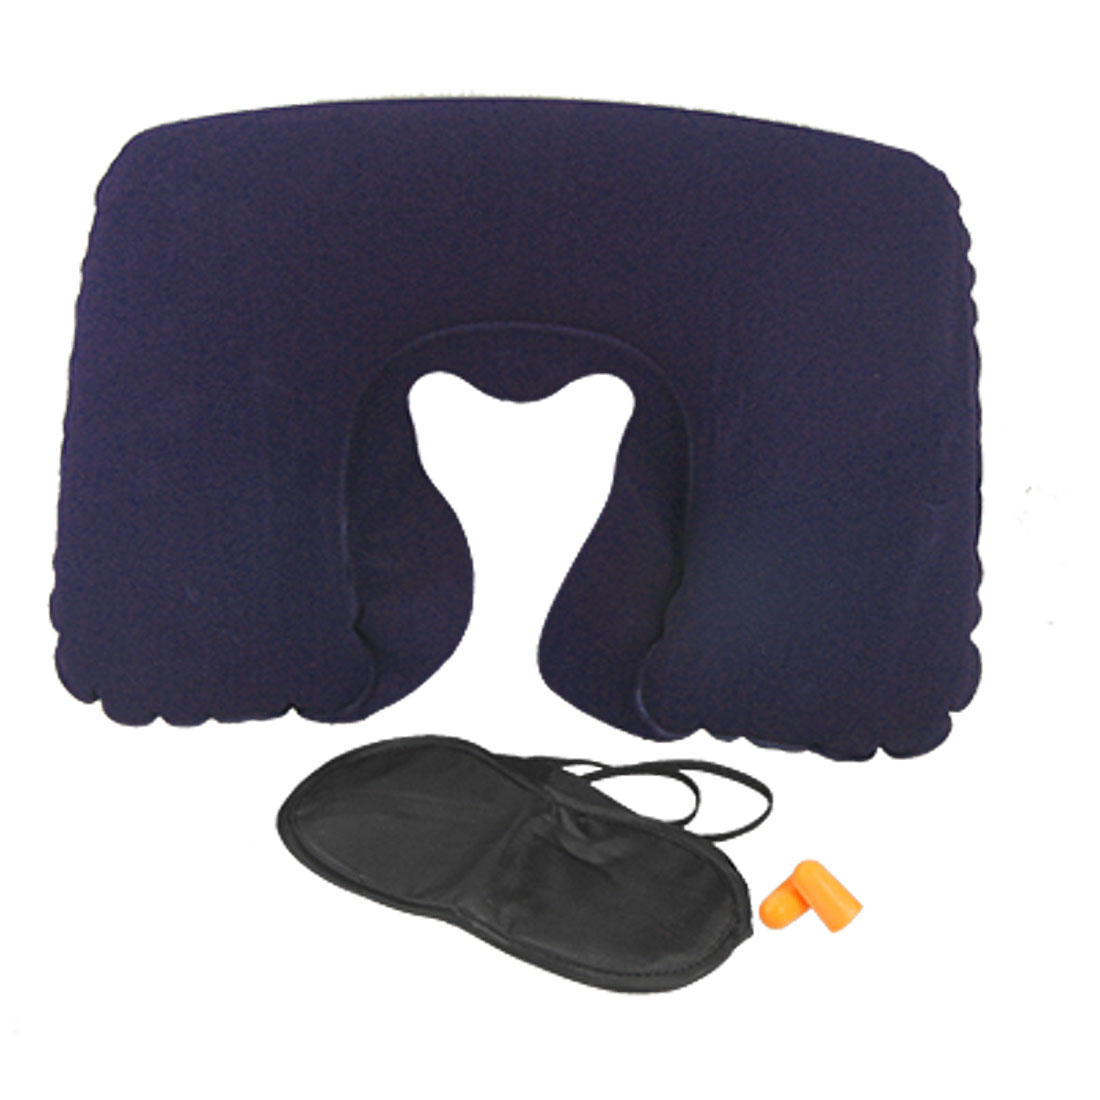 U Shape Air Cushion Head Neck Rest Inflatable Pillow w Eye Mask